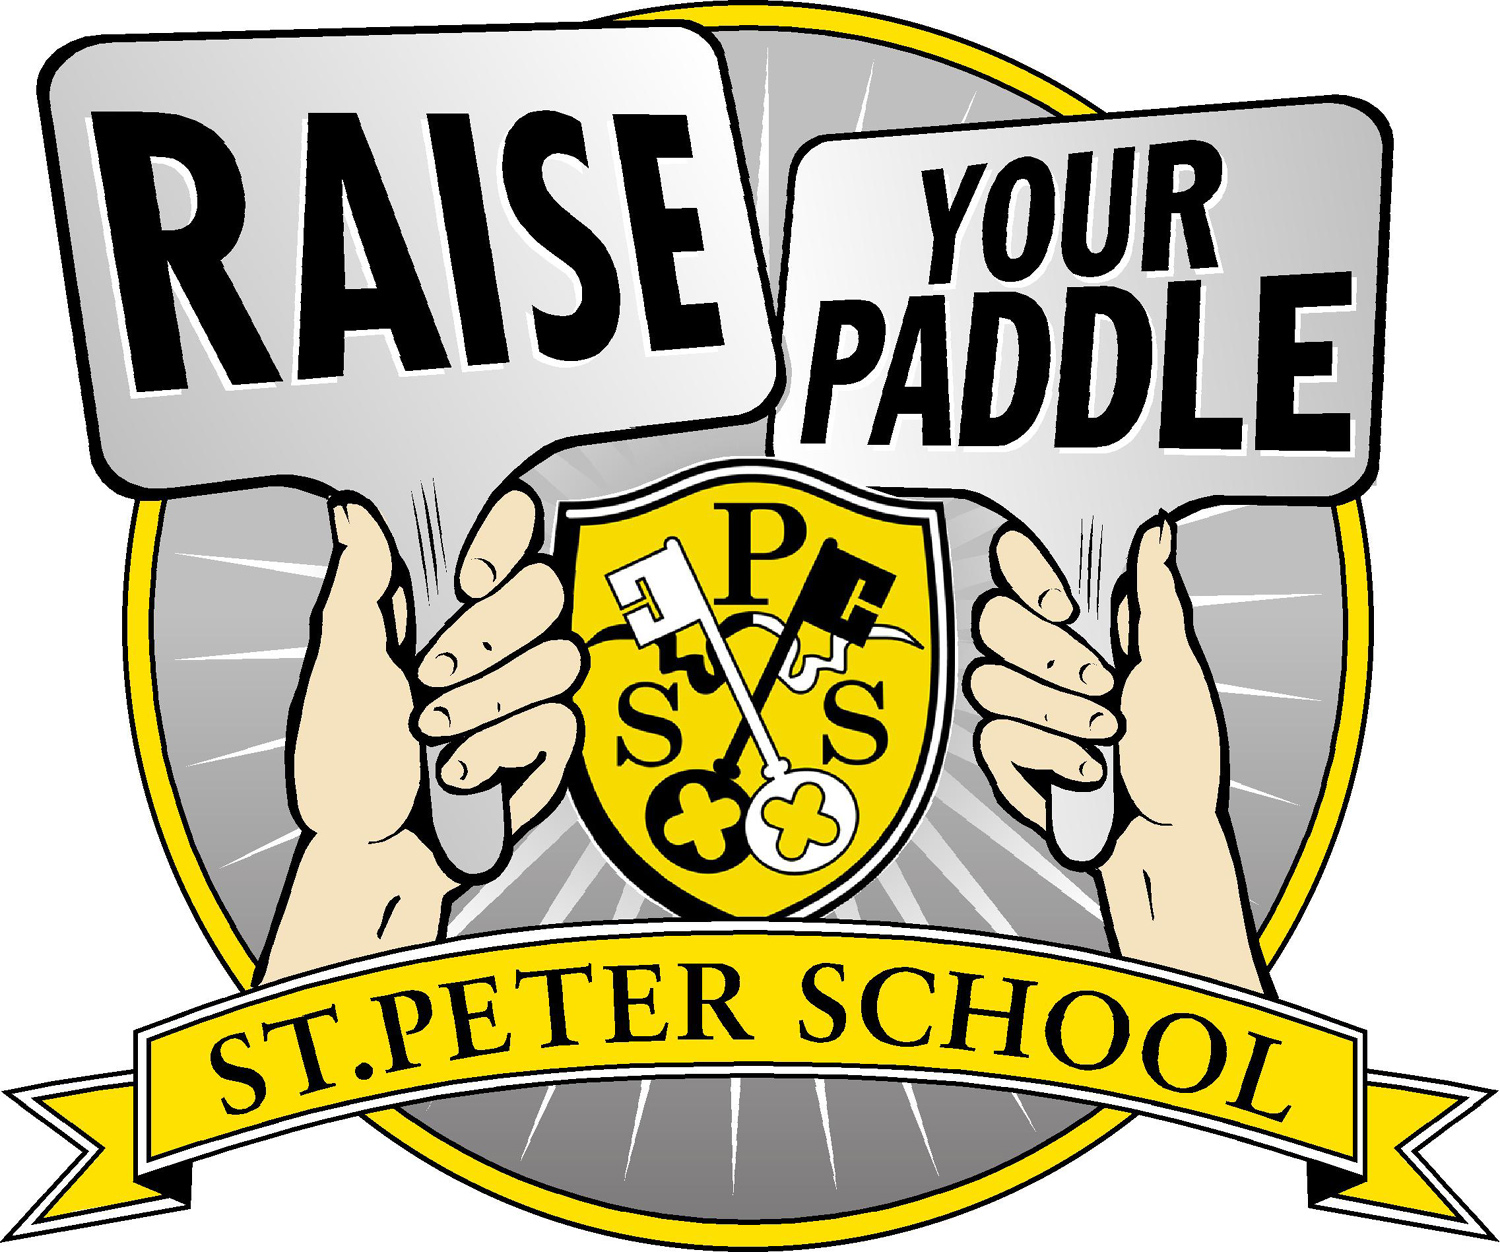 Raise Your Paddle, St. Peter